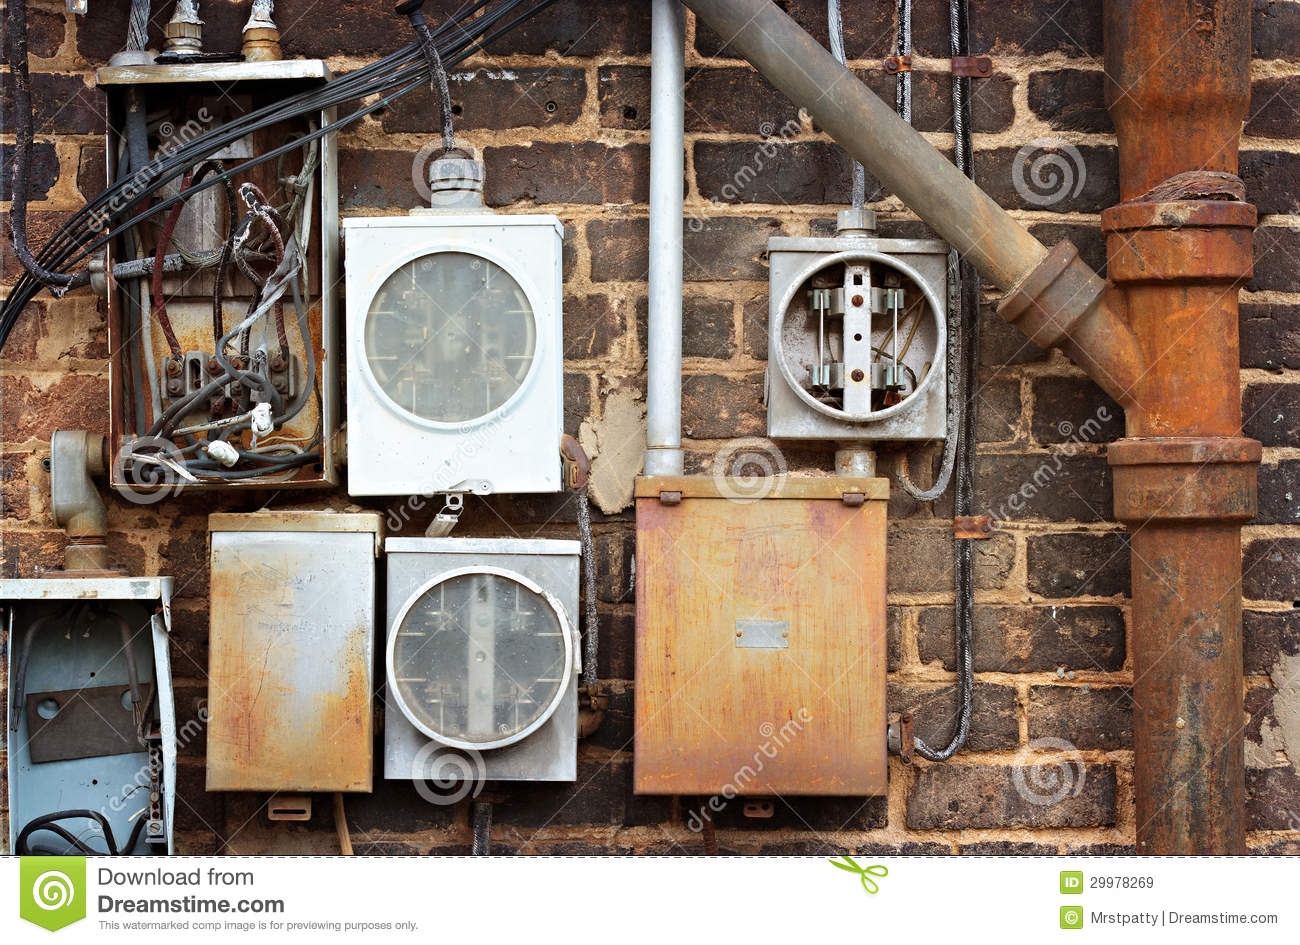 Electrical Power Meter Boxes : Electrical meter boxes royalty free stock images image